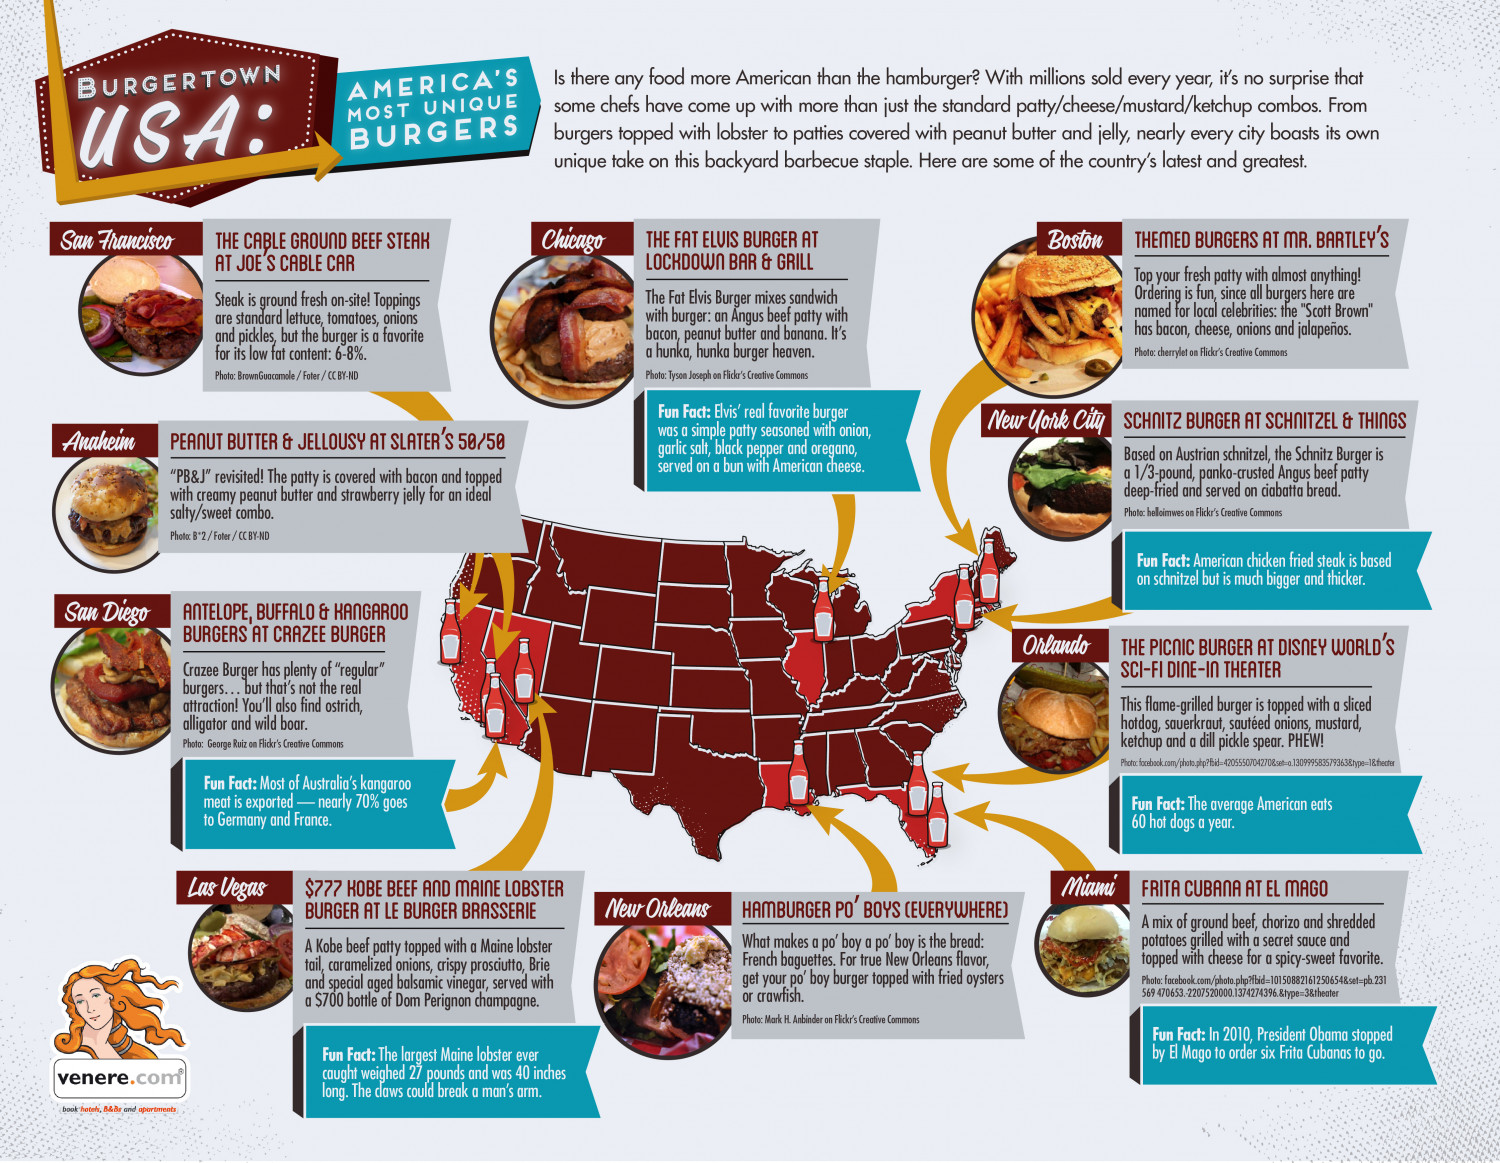 Burgertown, U.S.A.: America's Most Unique Burgers Infographic